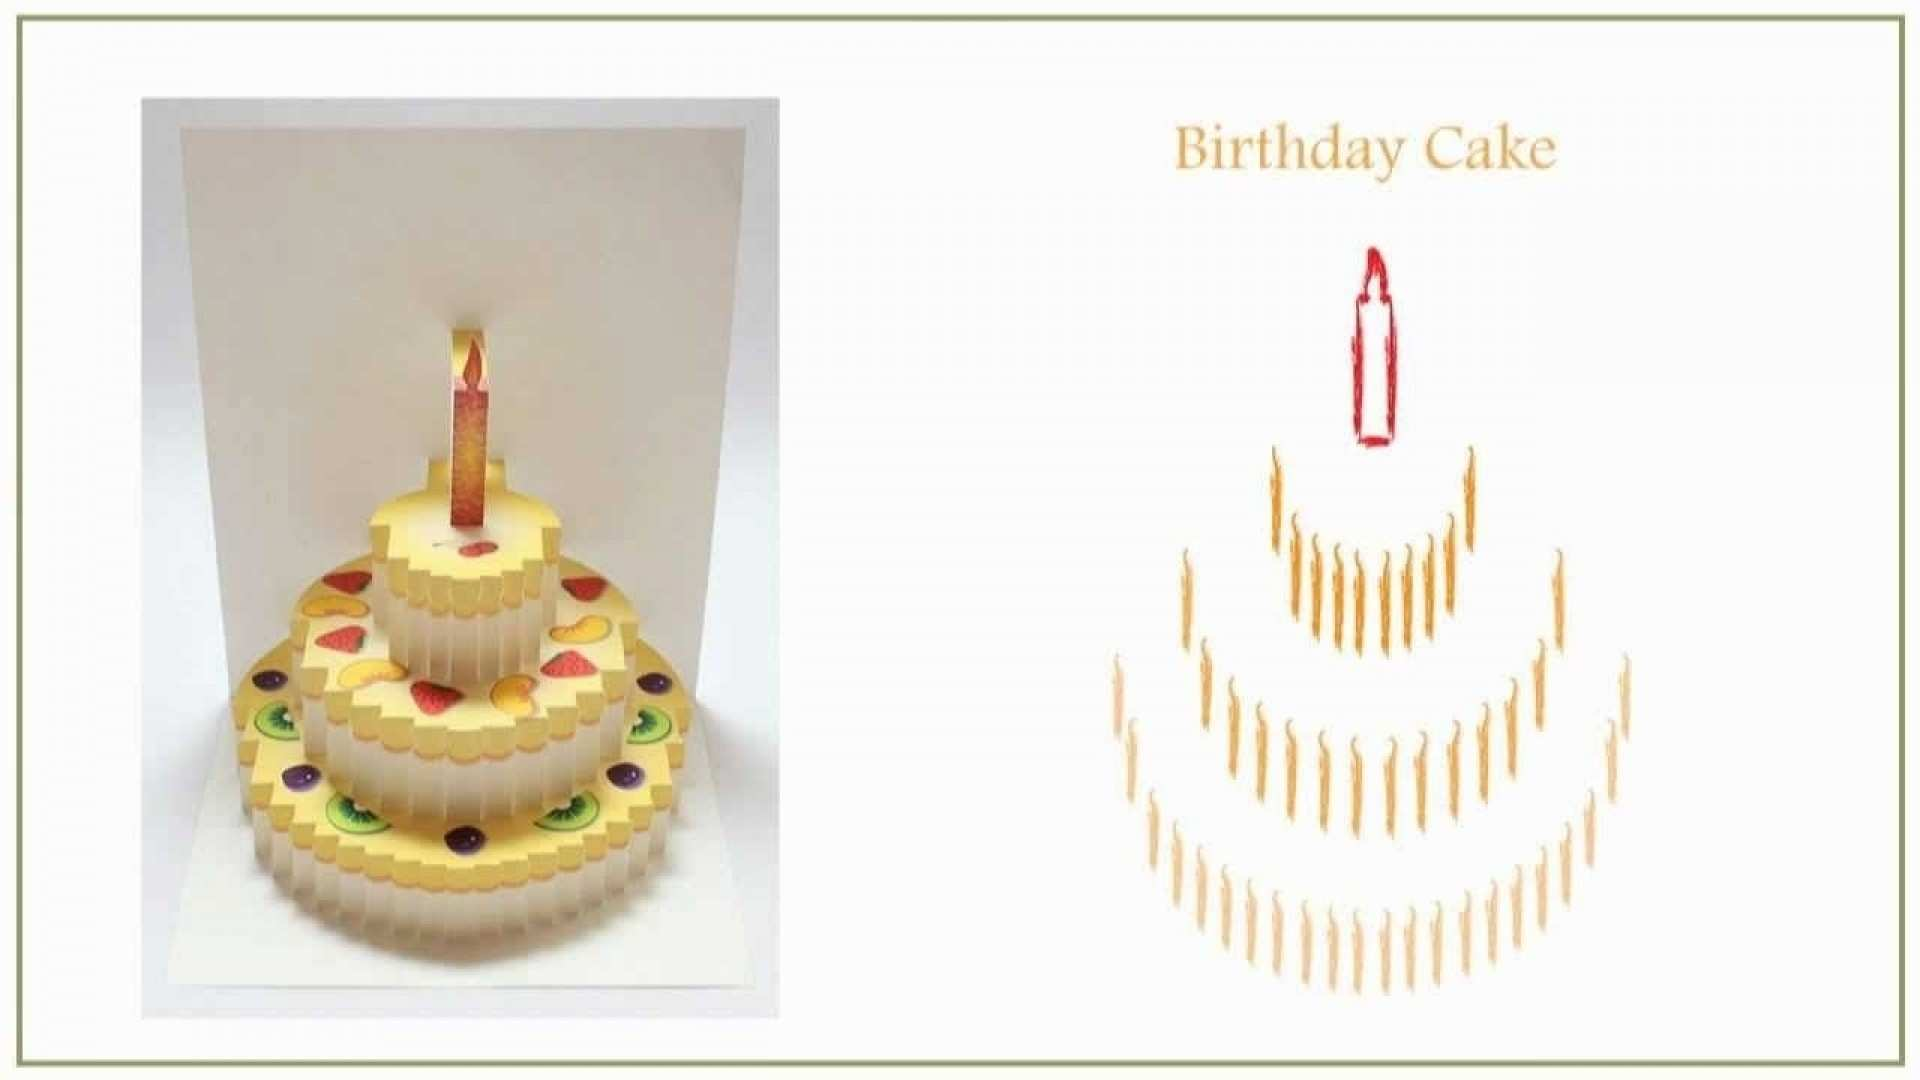 96 Blank Pop Up Card Templates Free Download Layouts By Pop Up Card Templates Free Download Cards Design Templates